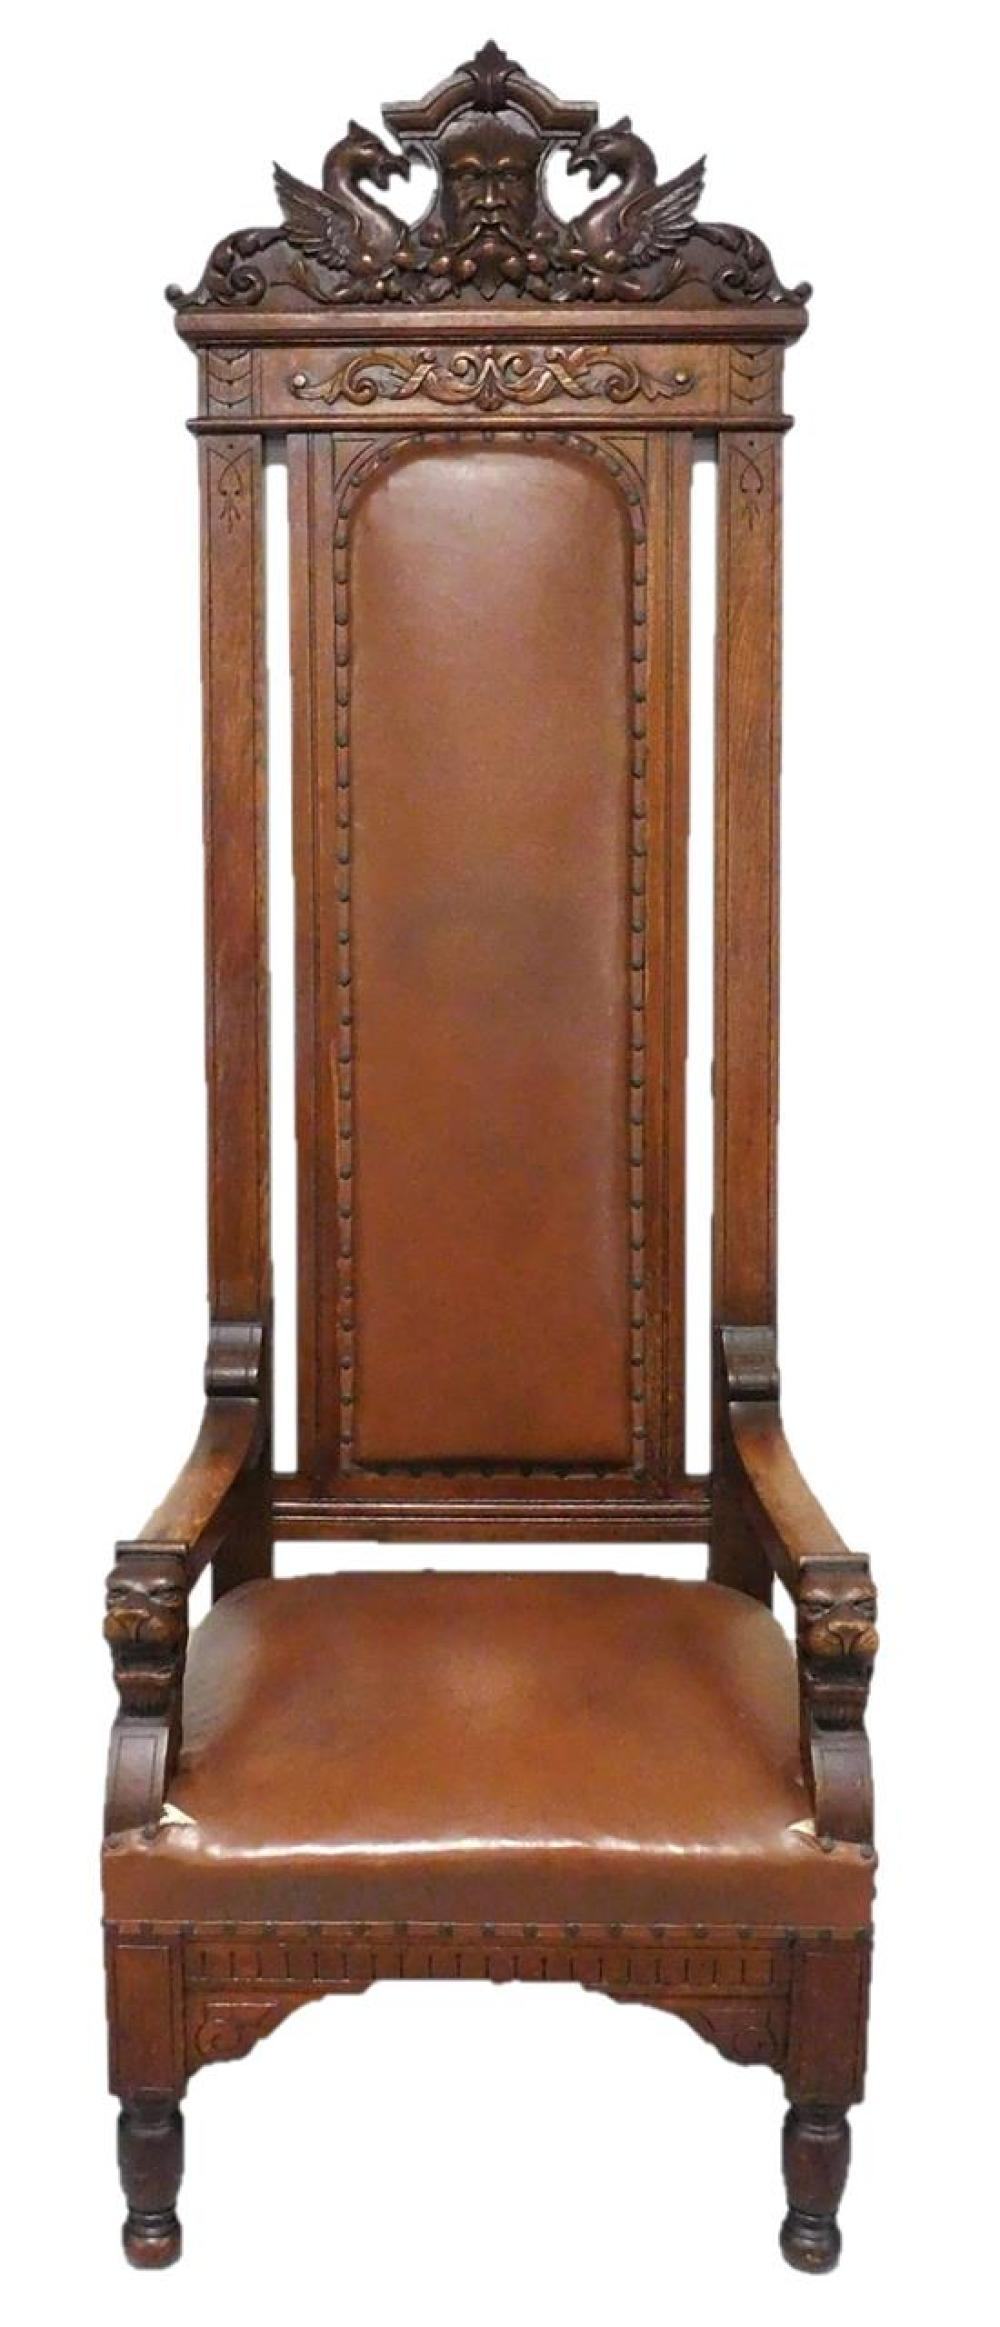 Monumental Renaissance Revival throne chair with masque and griffin carved crest, late 19th C., dark mahogany stain, elaborate carvi...